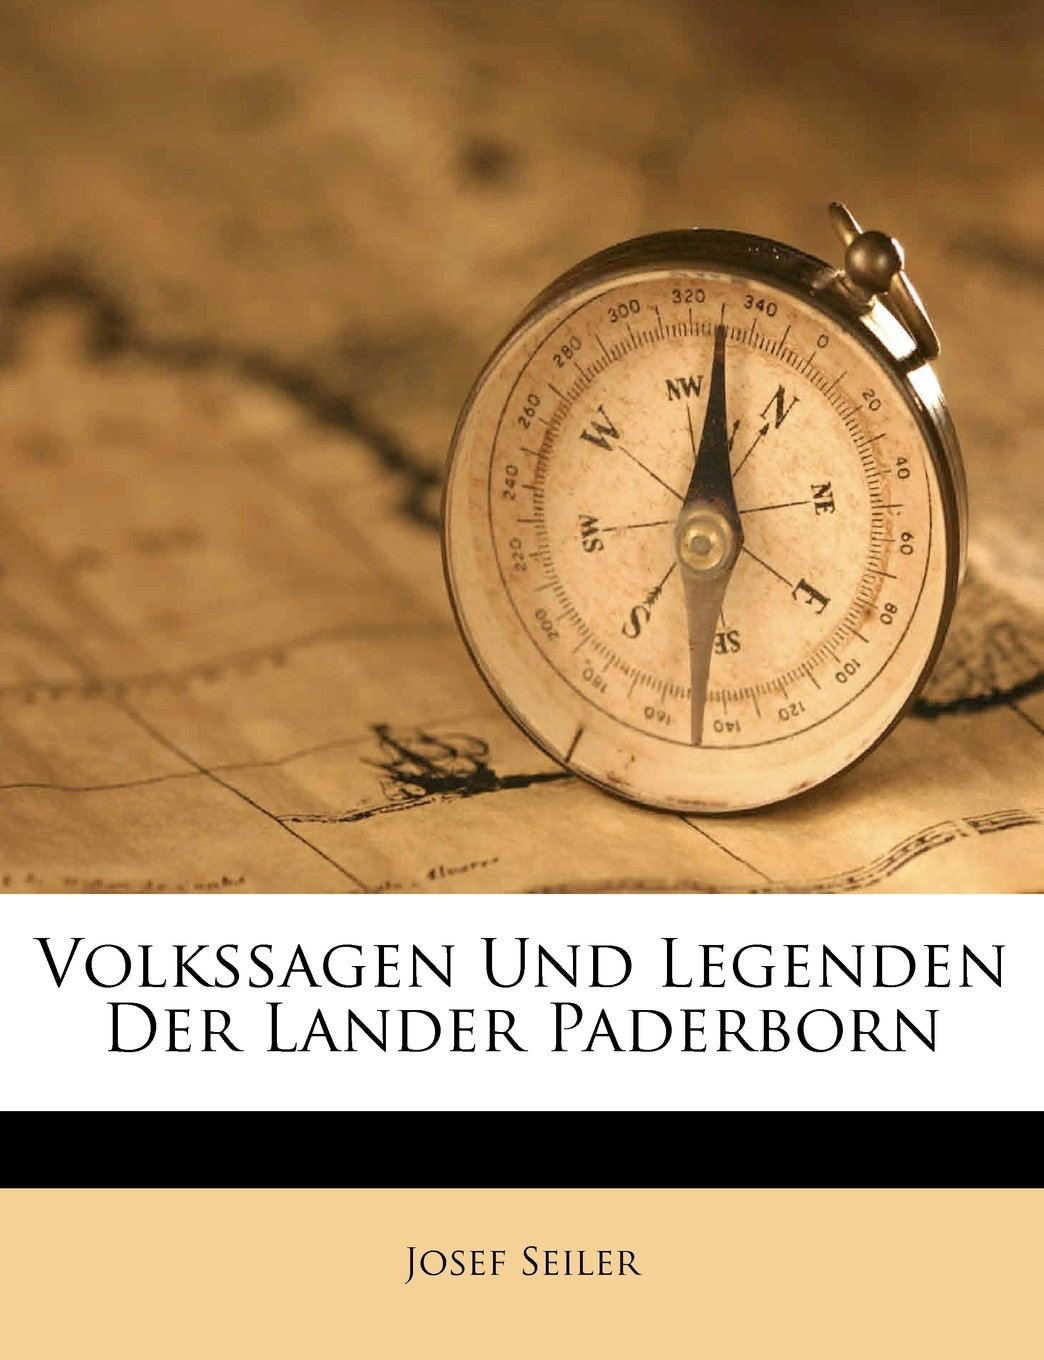 Volkssagen Und Legenden Der Lander Paderborn (German Edition) ebook